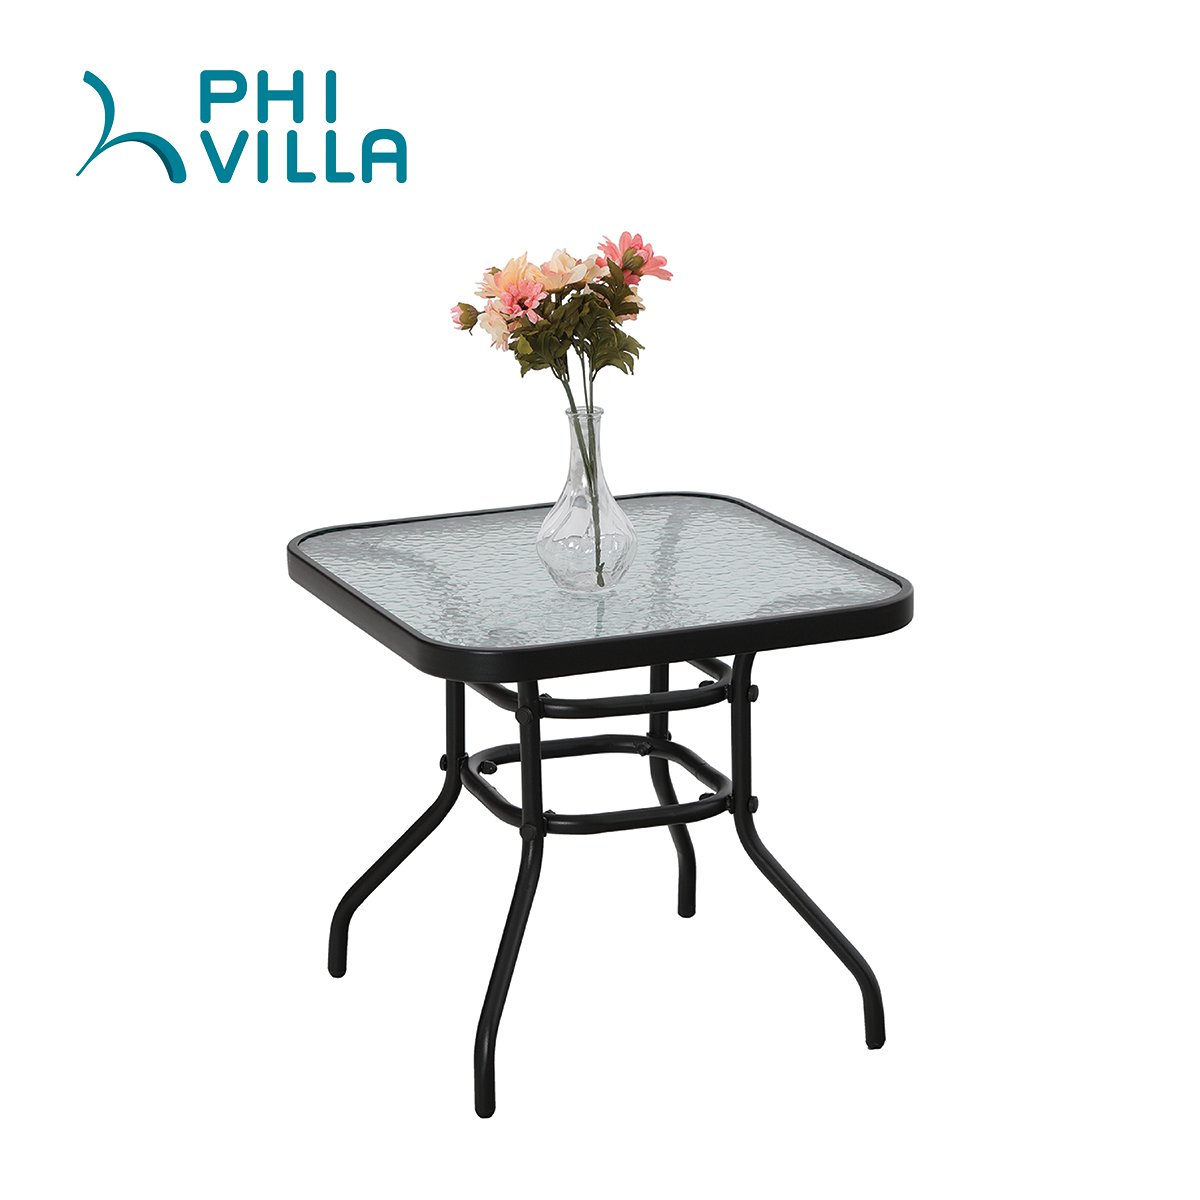 PHI VILLA Patio 3 PC Padded Folding Chair Set Adjustable Reclining 2 Position, Beige by PHI VILLA (Image #5)